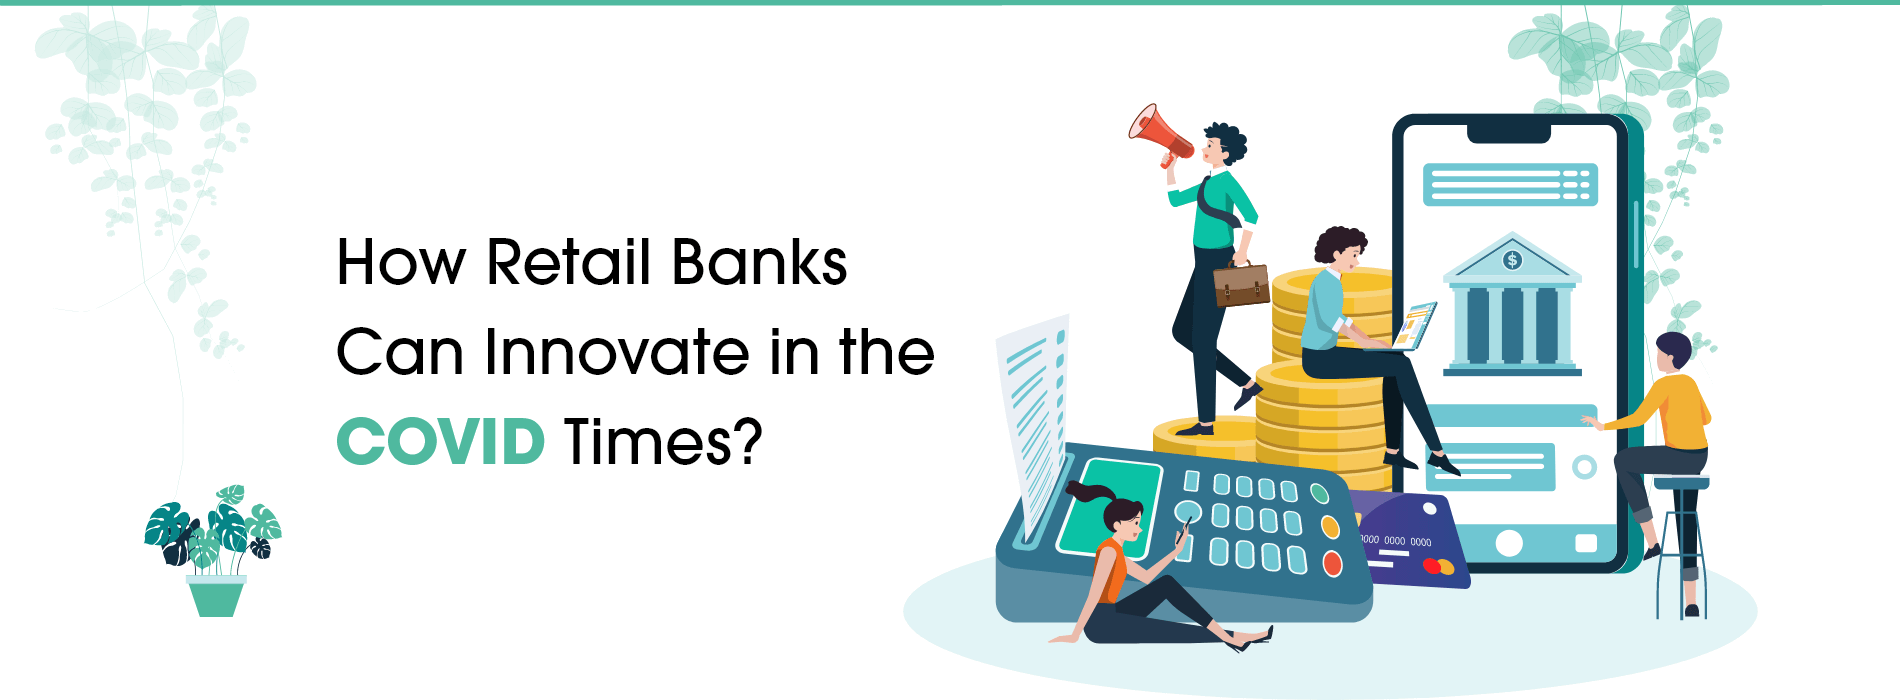 How Retail Banks Can Innovate in the COVID Times